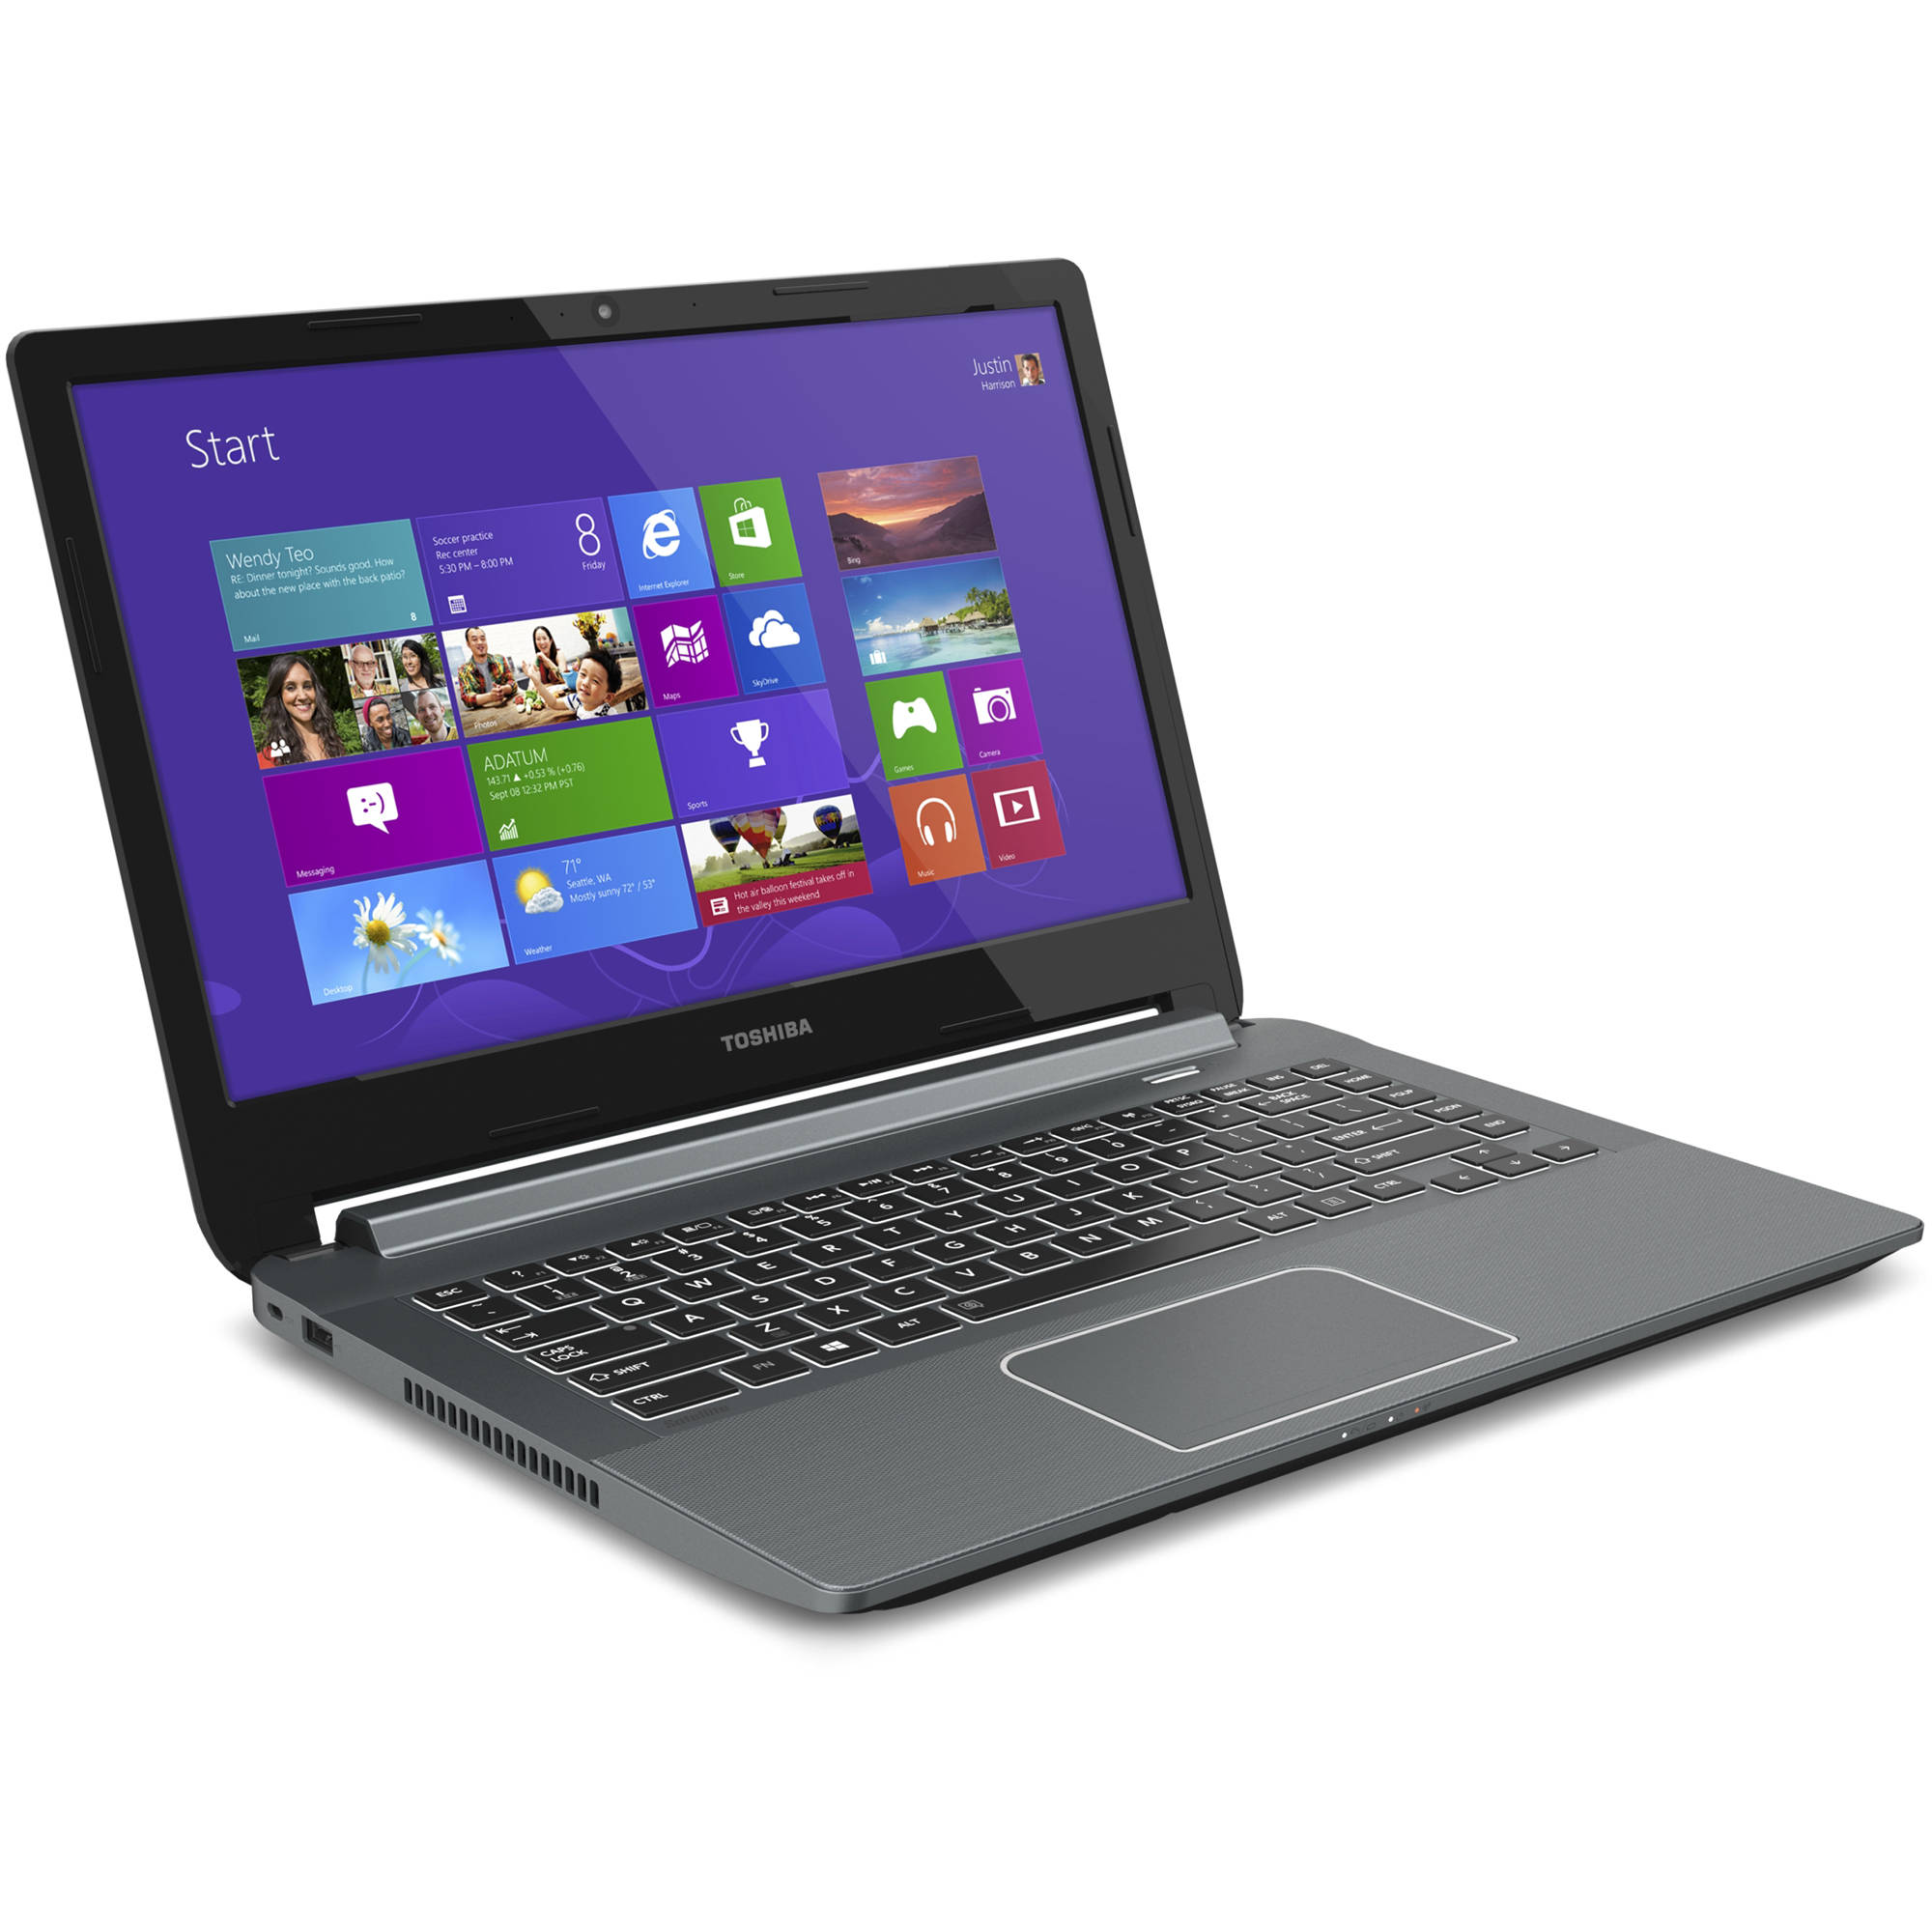 "Refurbished Toshiba Satellite 14"" Laptop PC with Intel Core i3-3217U Processor (1.8 GHz), 4GB Memory, 500GB Hard Drive and Windows 8, U945-S4380"